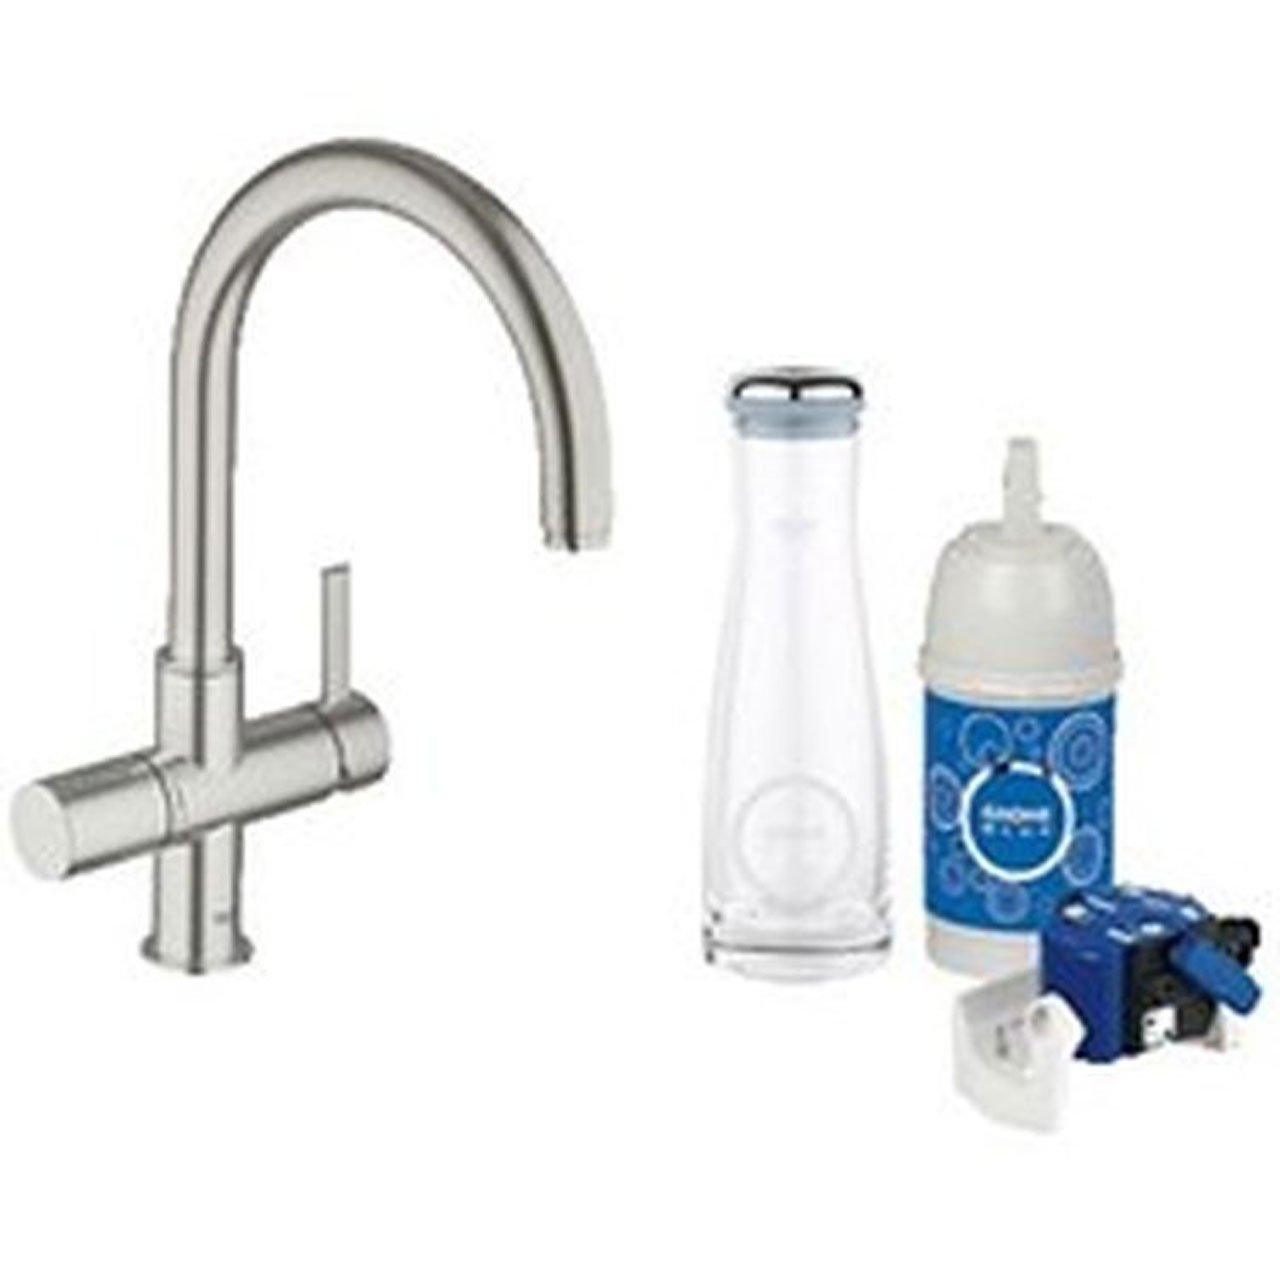 Grohe 31312DC0 GROHE Blue Pure Dual function Kitchen Faucet - Water ...